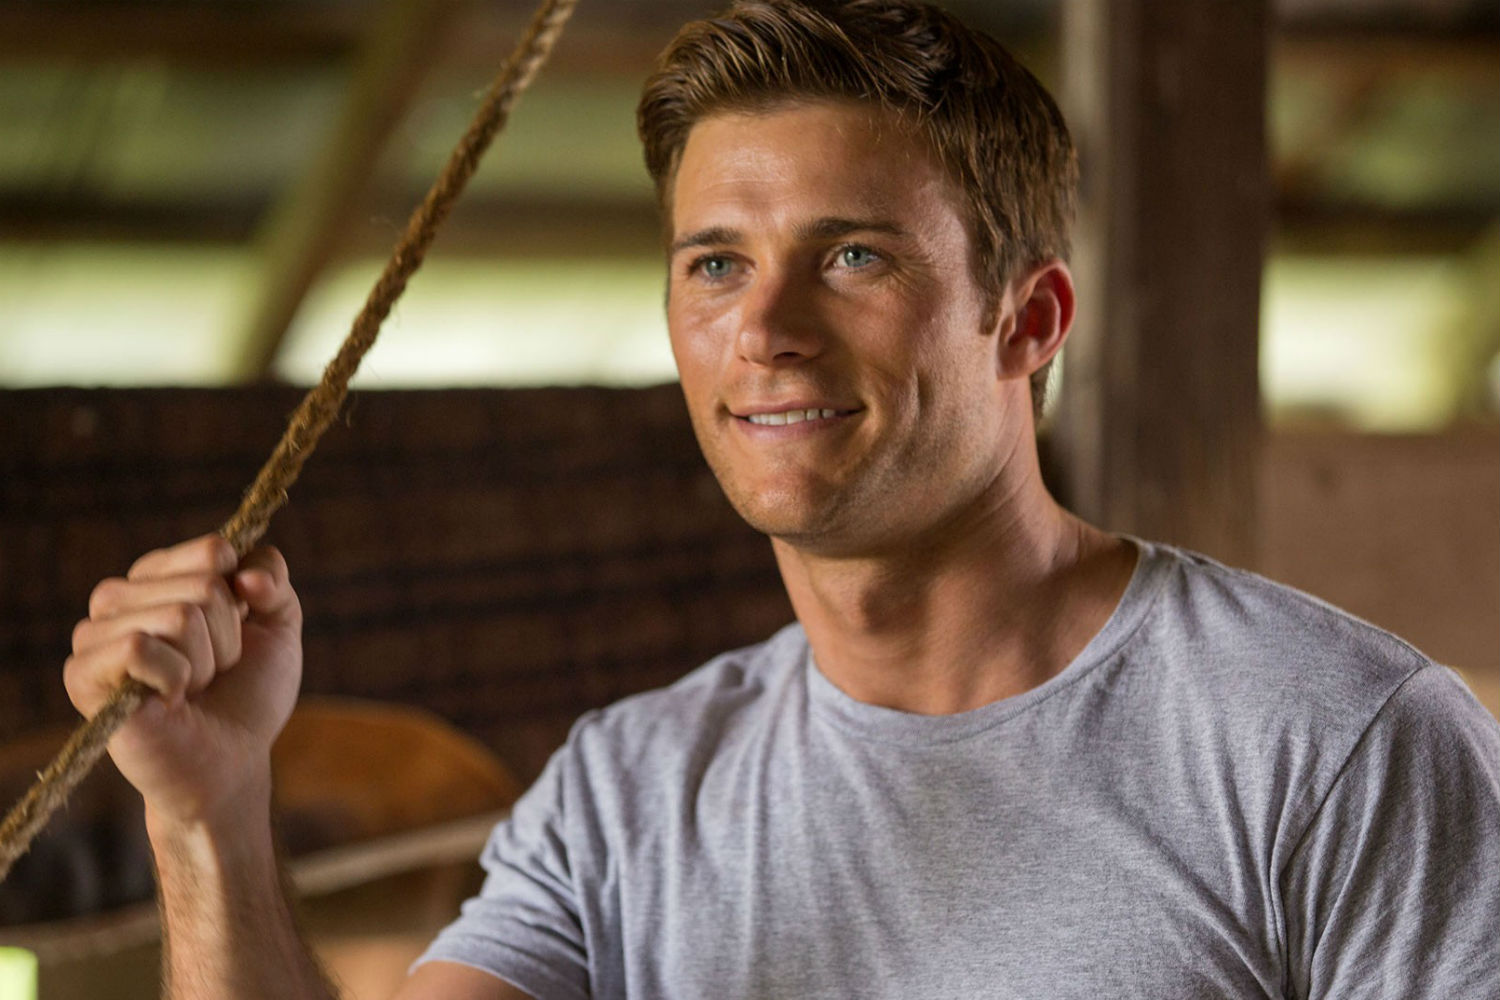 The longest ride release date in Brisbane